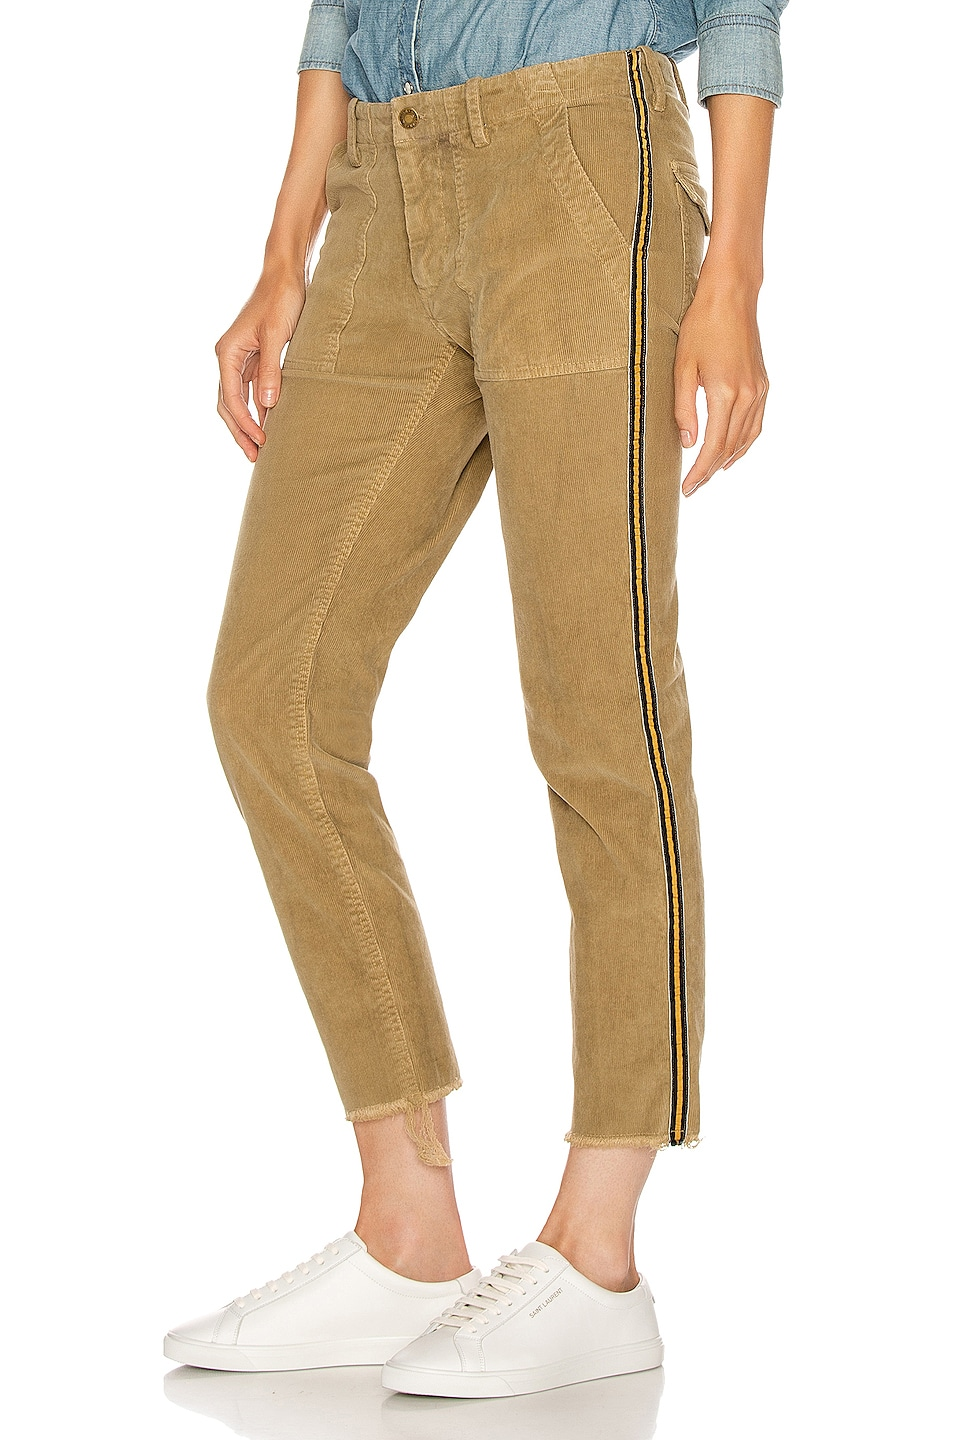 Image 1 of NILI LOTAN Jenna Pant with Tape in Mossy Gold, Black & Gold